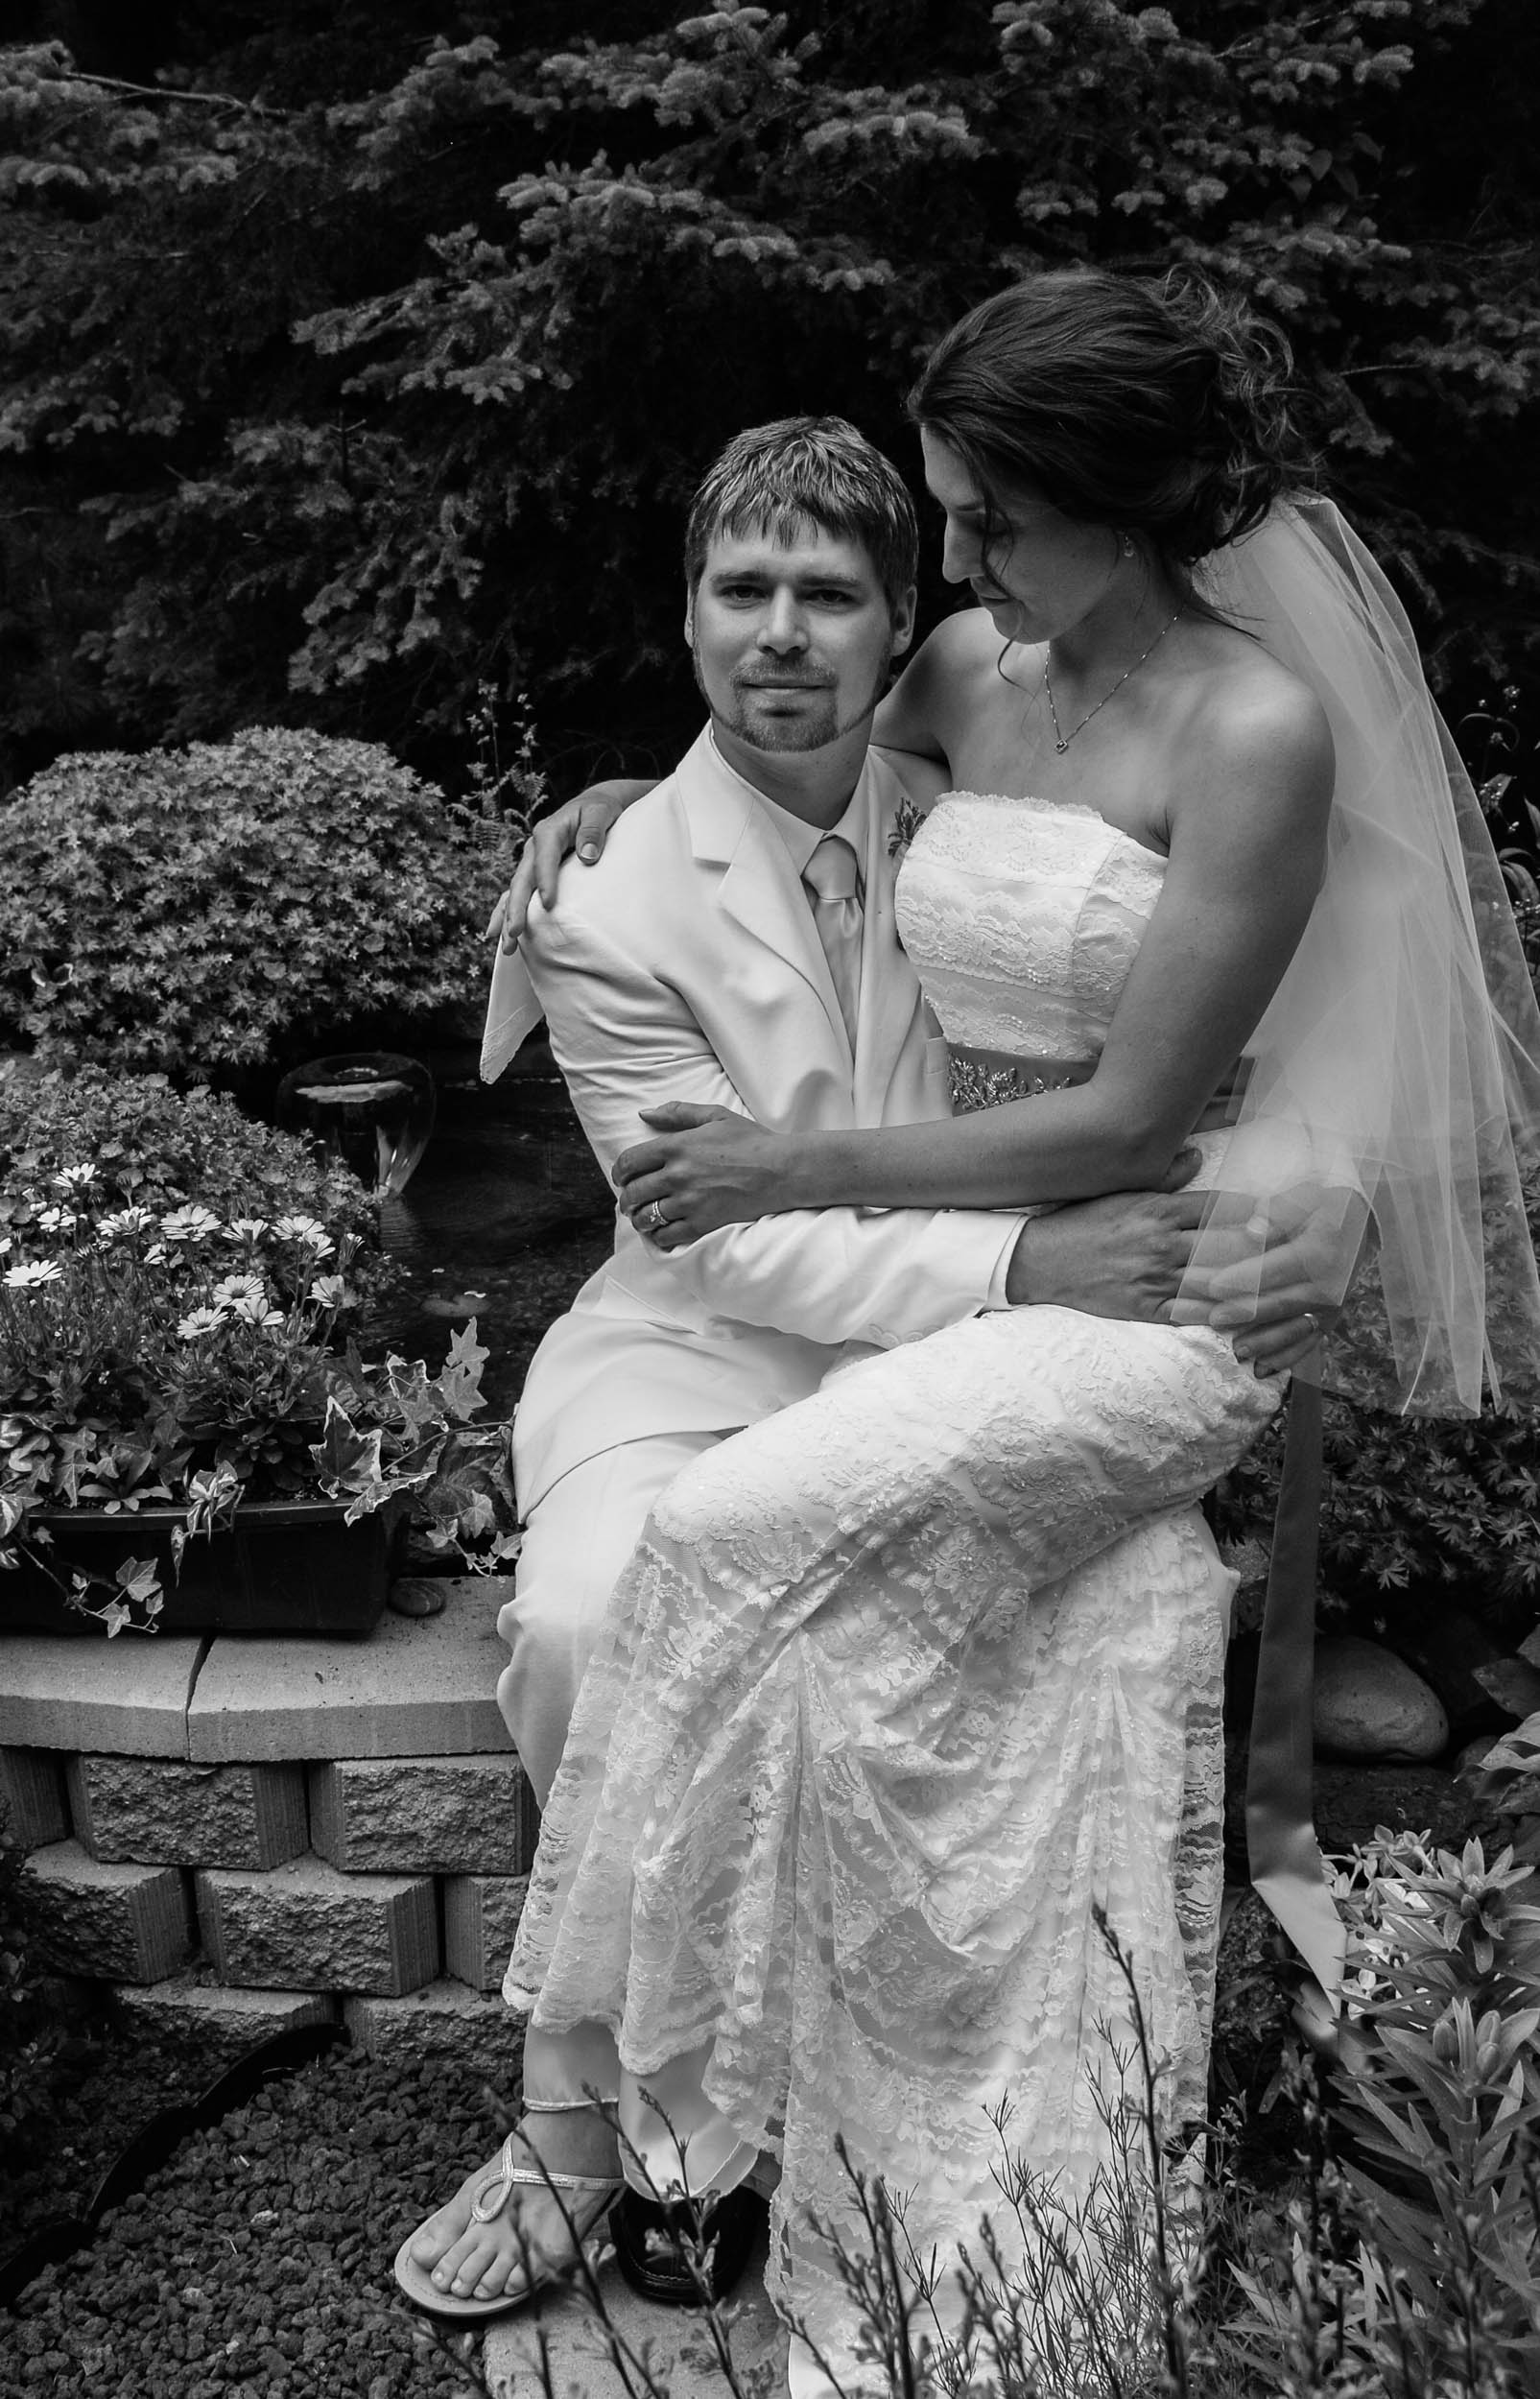 Bride and groom share a moment together